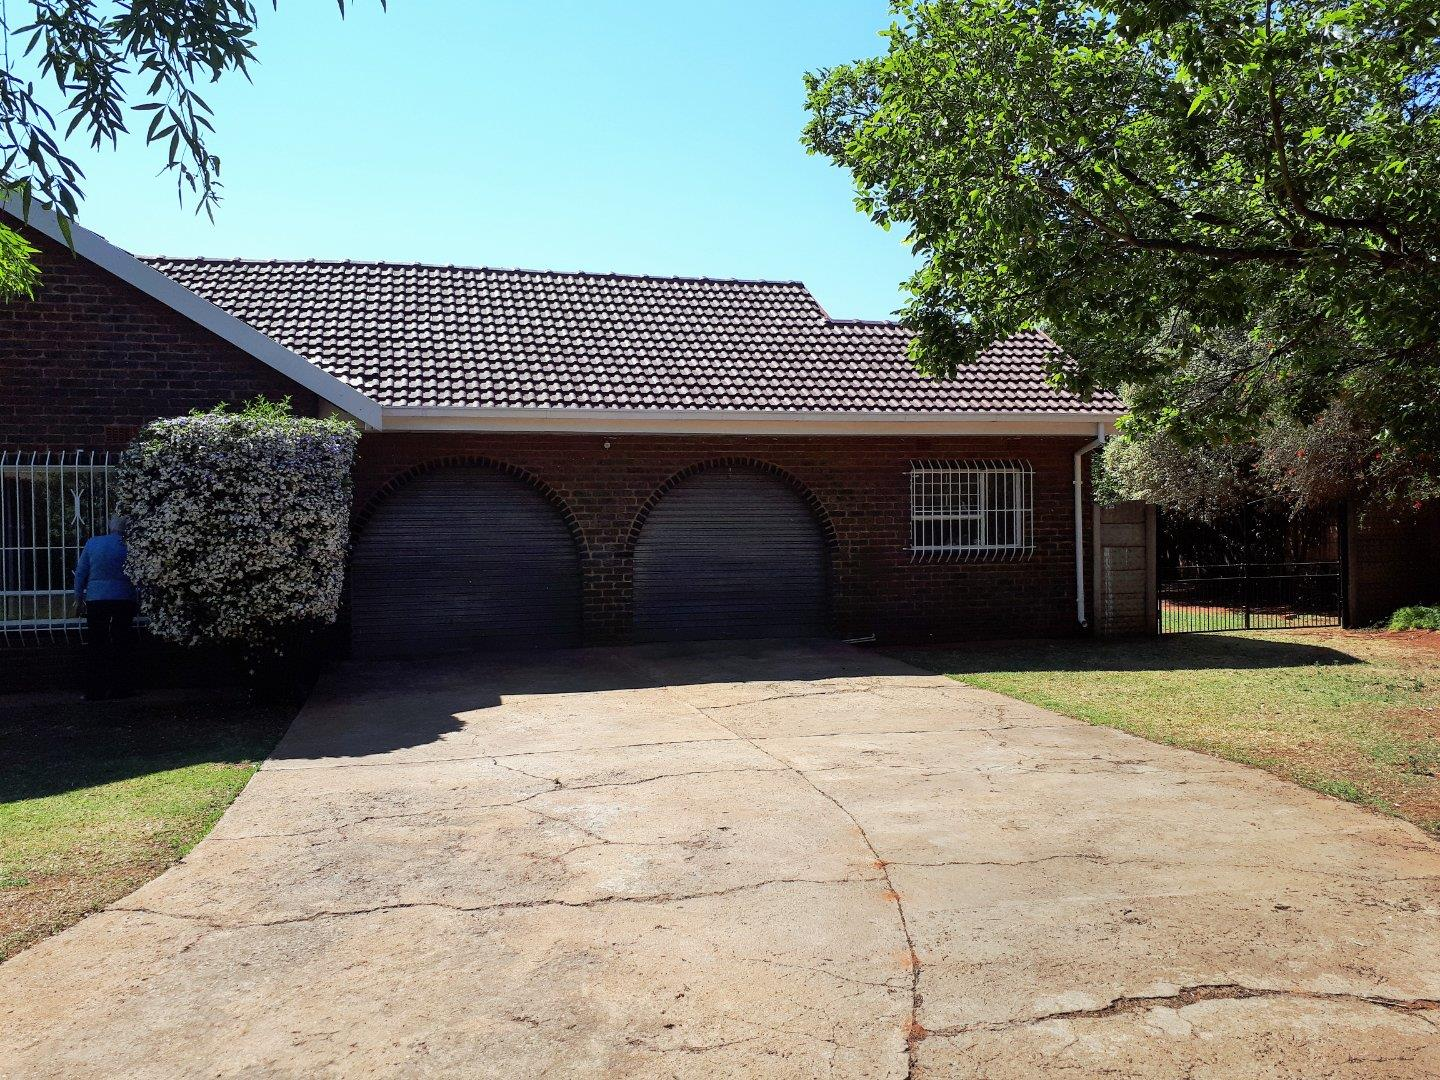 4 Bedroom  House for Sale in Randfontein - Gauteng